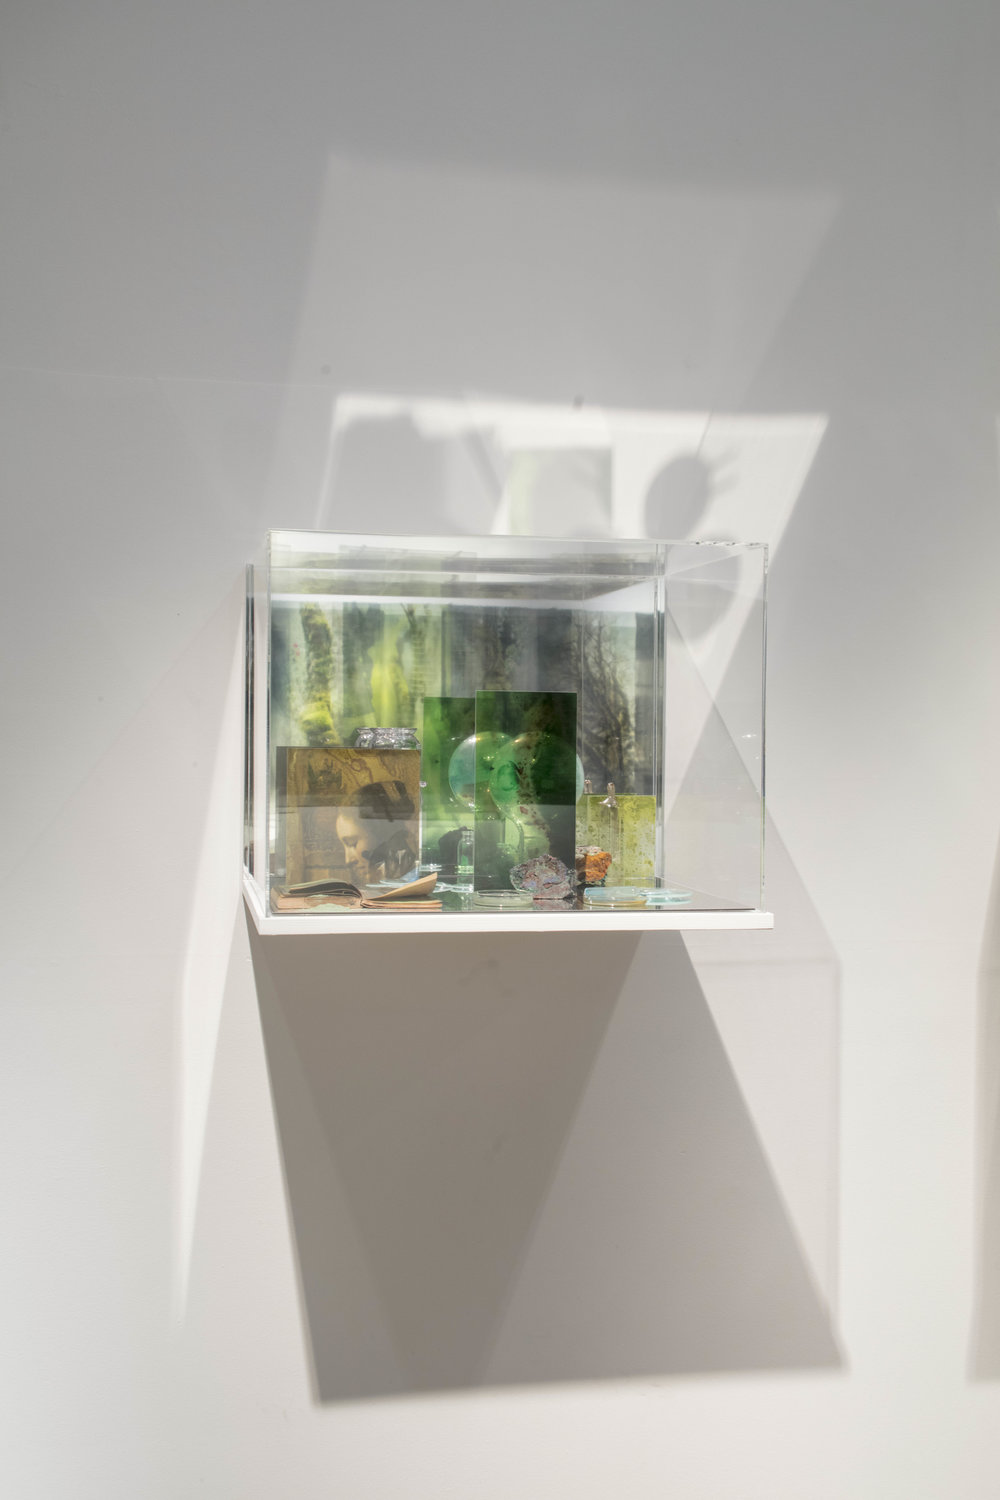 JANET LAURENCE   What Colour is the Sacred? (Green)  2018 Plywood, acrylic, mirror, details of Vermeer 'Woman reading a letter' c1663 printed on archival cotton rag, UV scan Rembrandt paint layers on duraclear, Oil glaze on acrylic, pigment, glass lenses, scientific glass, Malachite, notebook 45 x 60 x 45 cm